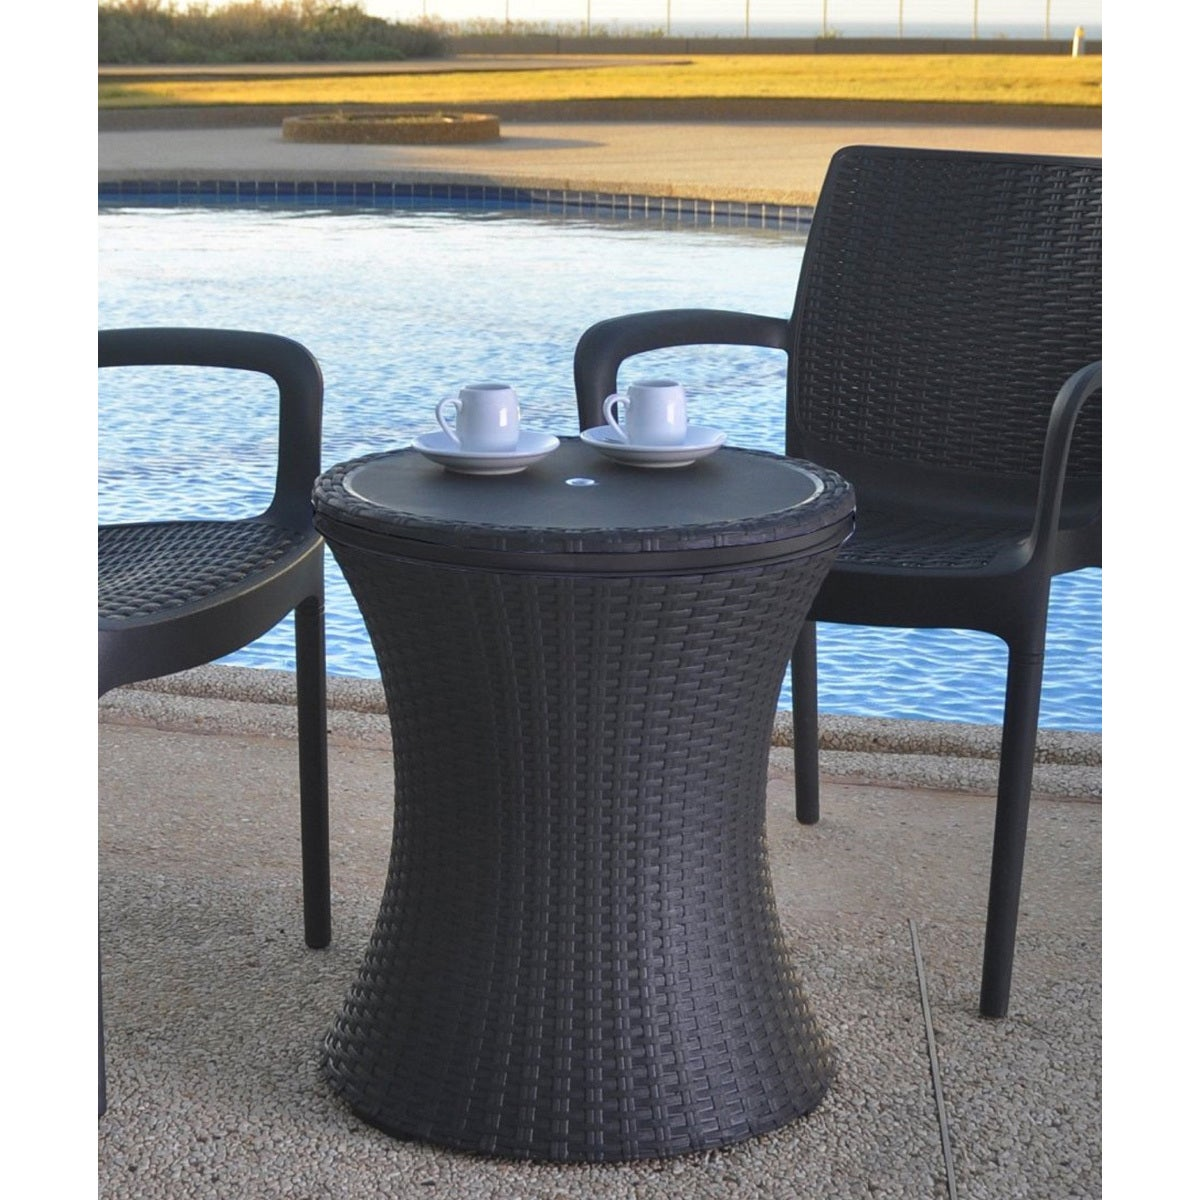 Keter Pacific Cool Bar Brown Wicker Outdoor Ice Cooler Table   Free  Shipping Today   Overstock.com   18928784